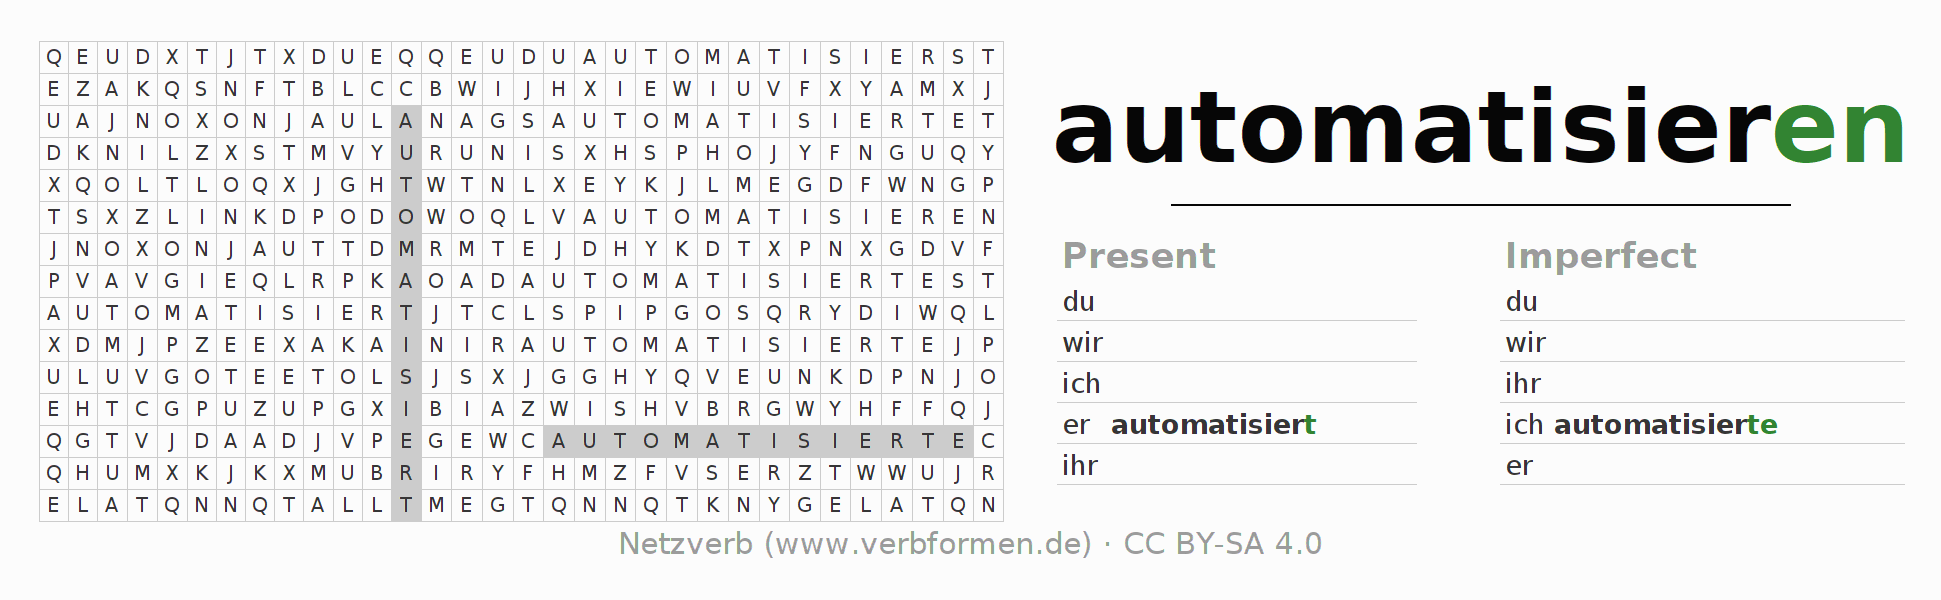 Word search puzzle for the conjugation of the verb automatisieren